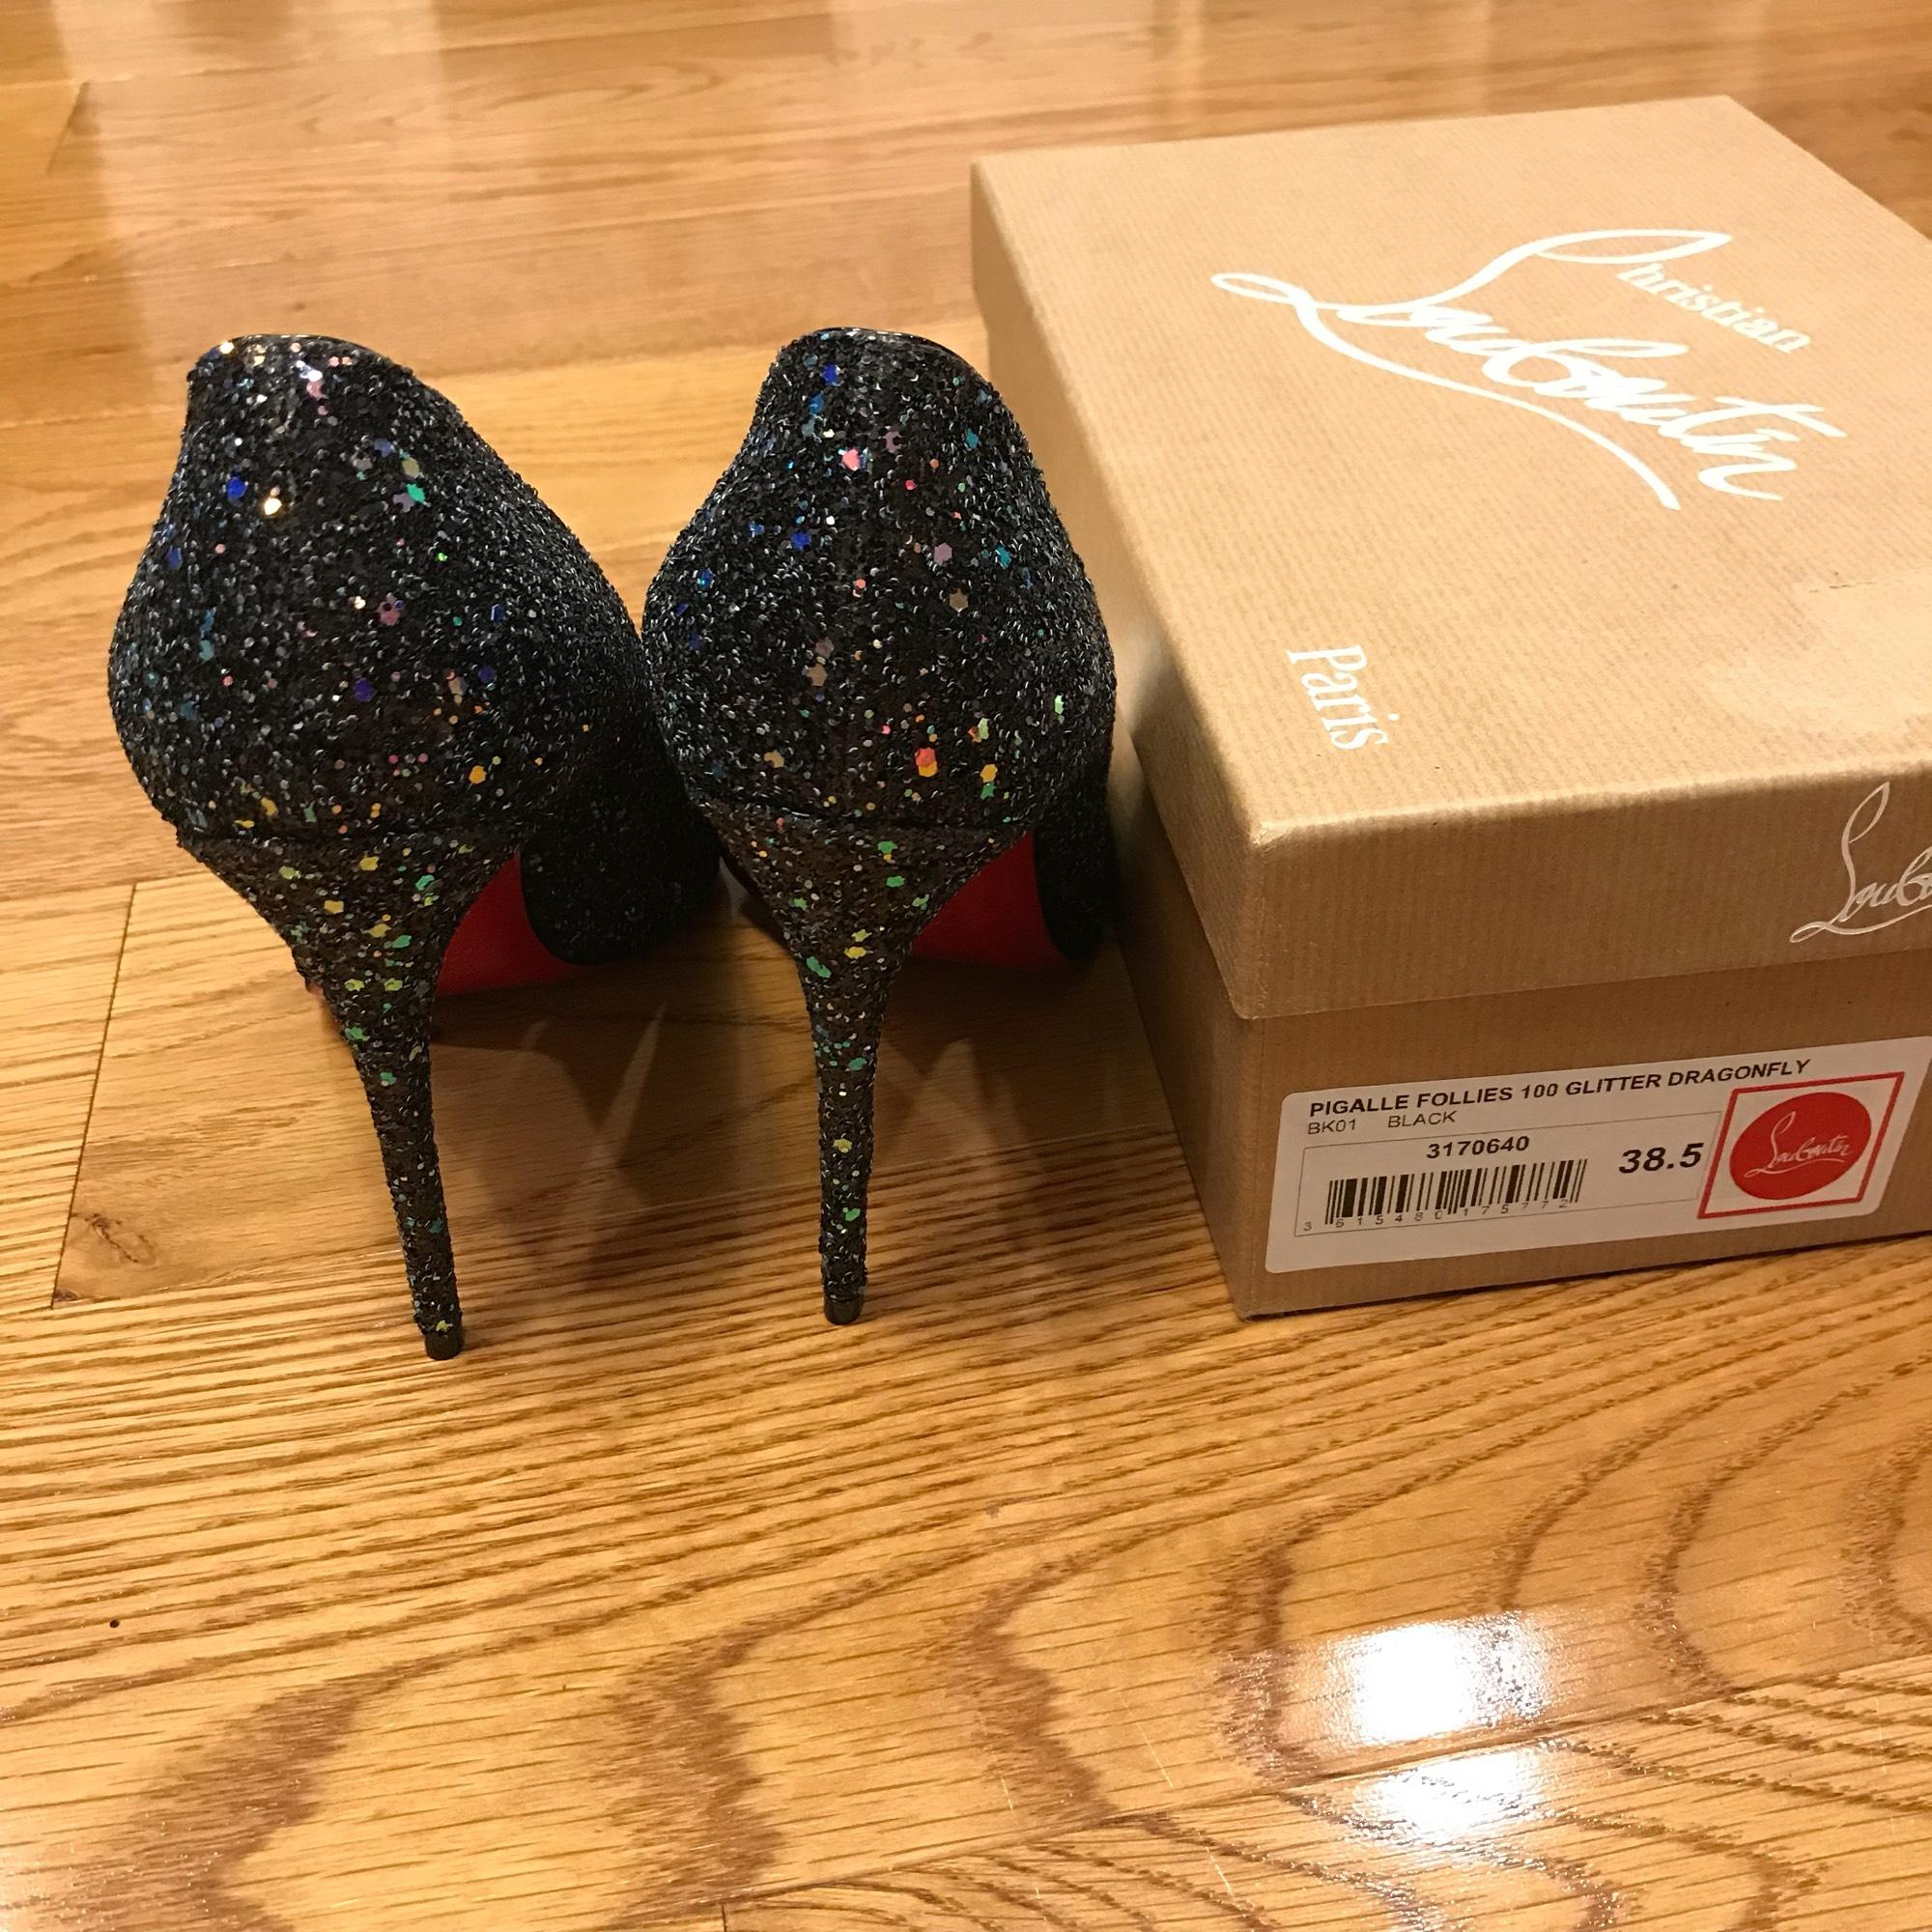 1af6924bf79 canada louboutin pigalle glitter flats pill 7301a 1a58b